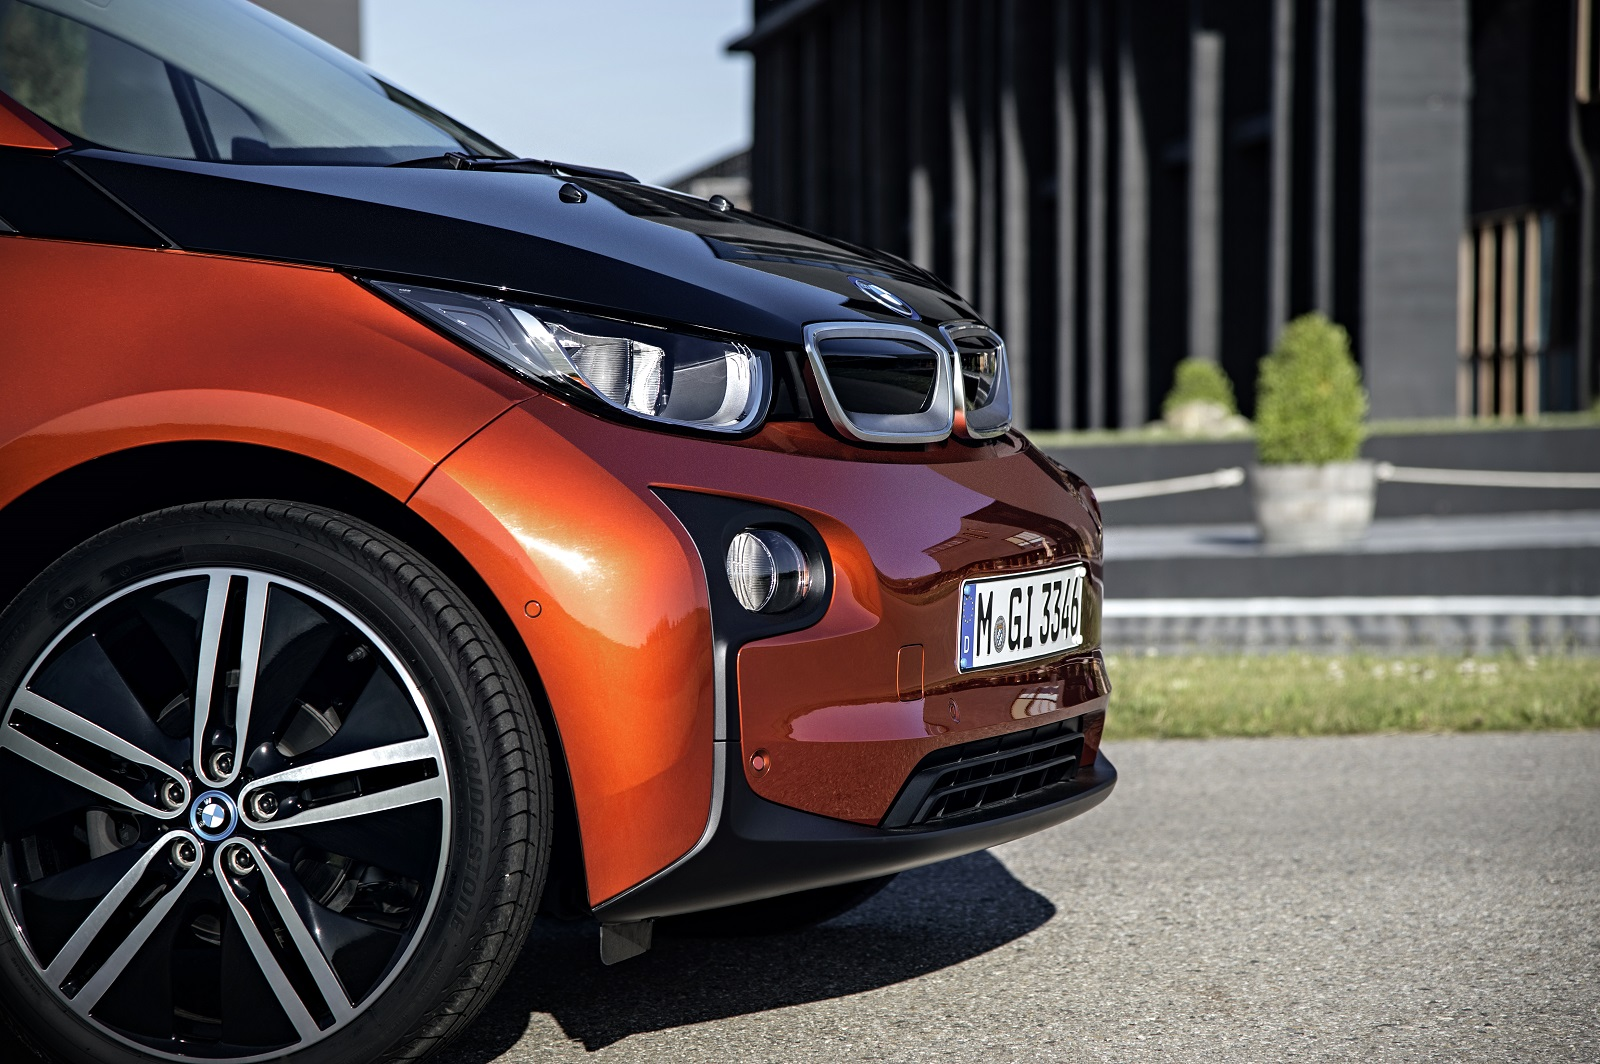 2014 Bmw I3 Electric Car Full Details And Images Released